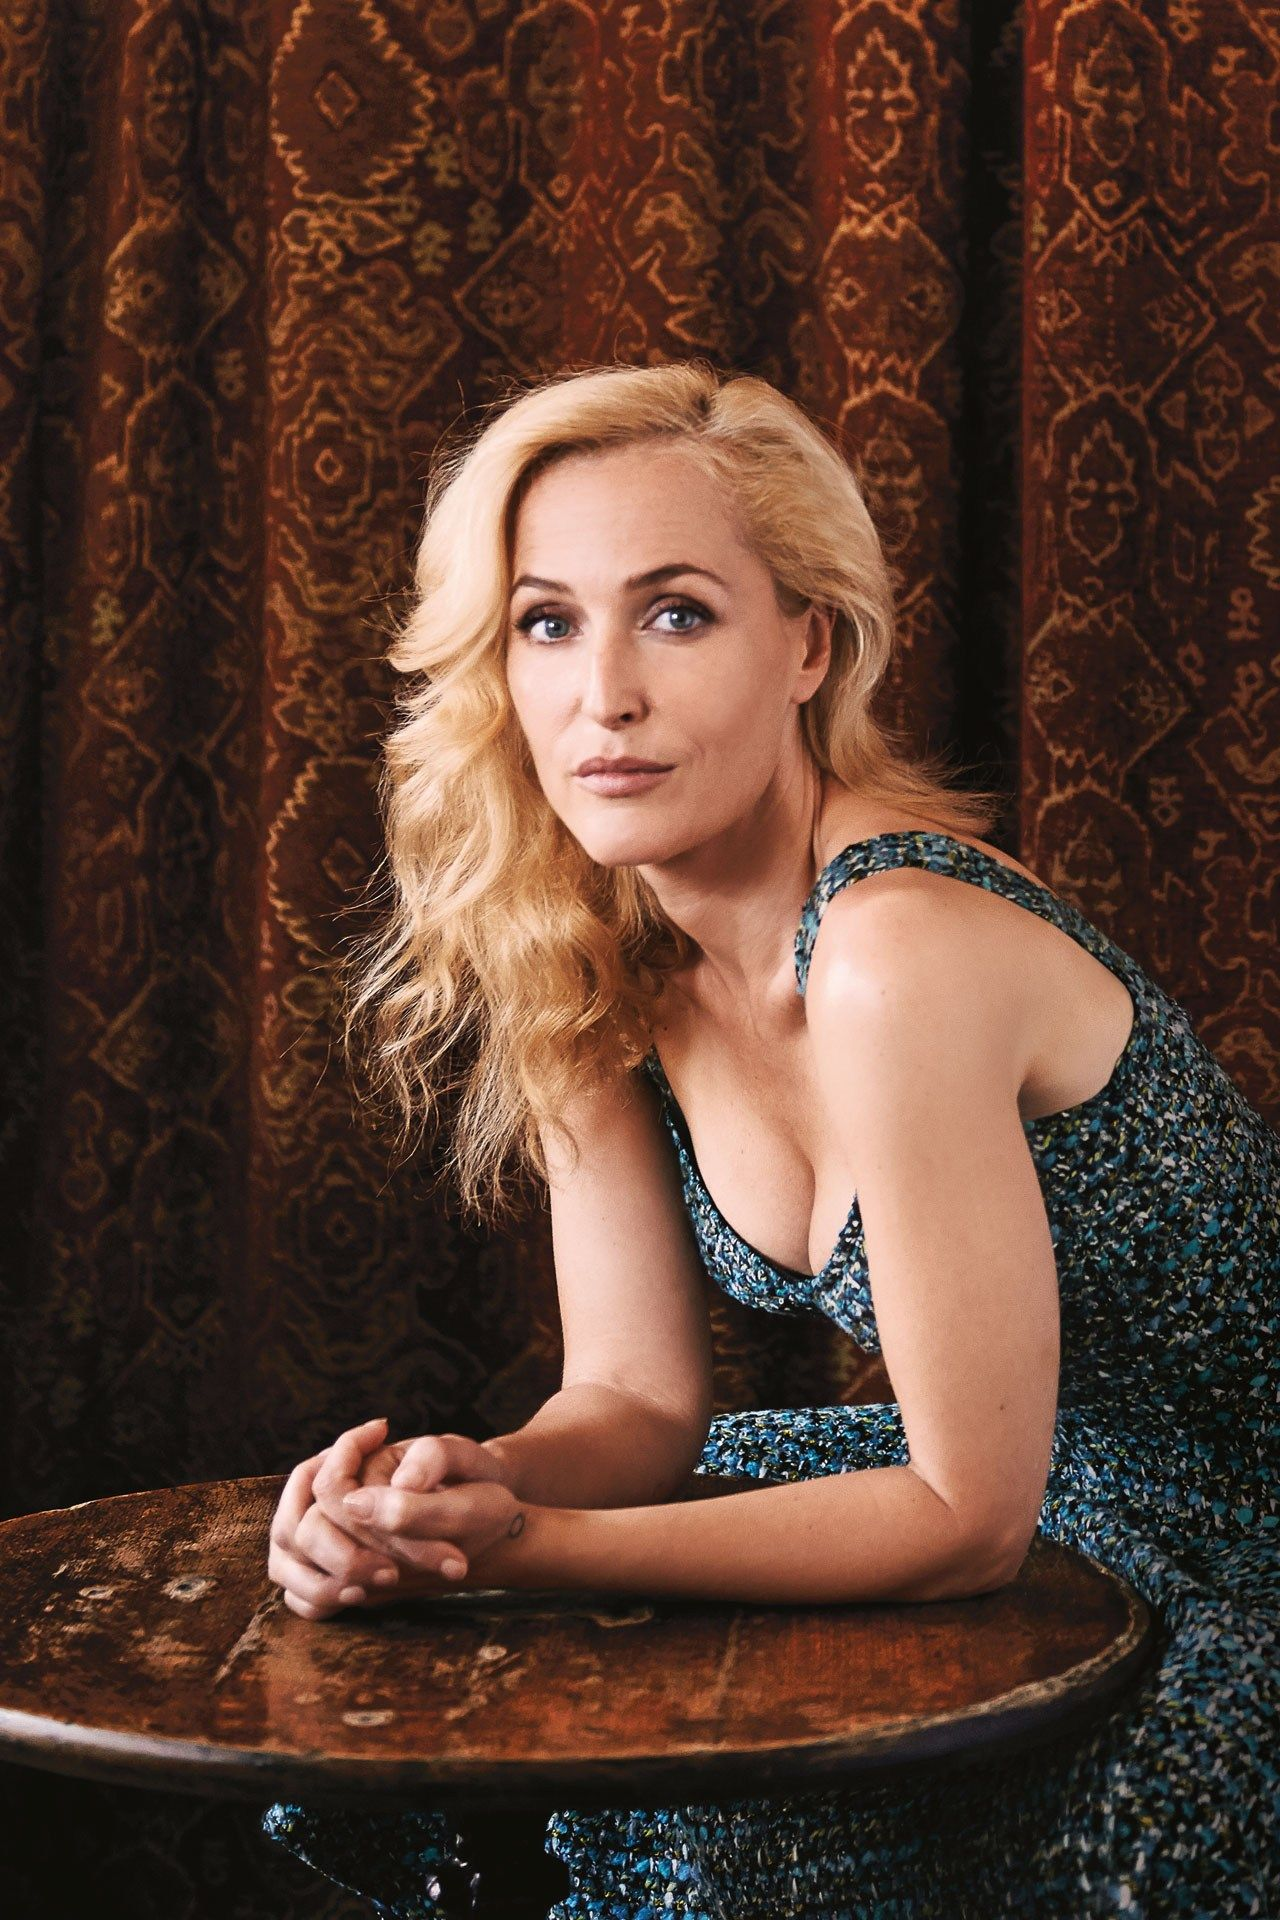 Erotica Gillian Anderson nude (94 foto and video), Sexy, Sideboobs, Twitter, braless 2019